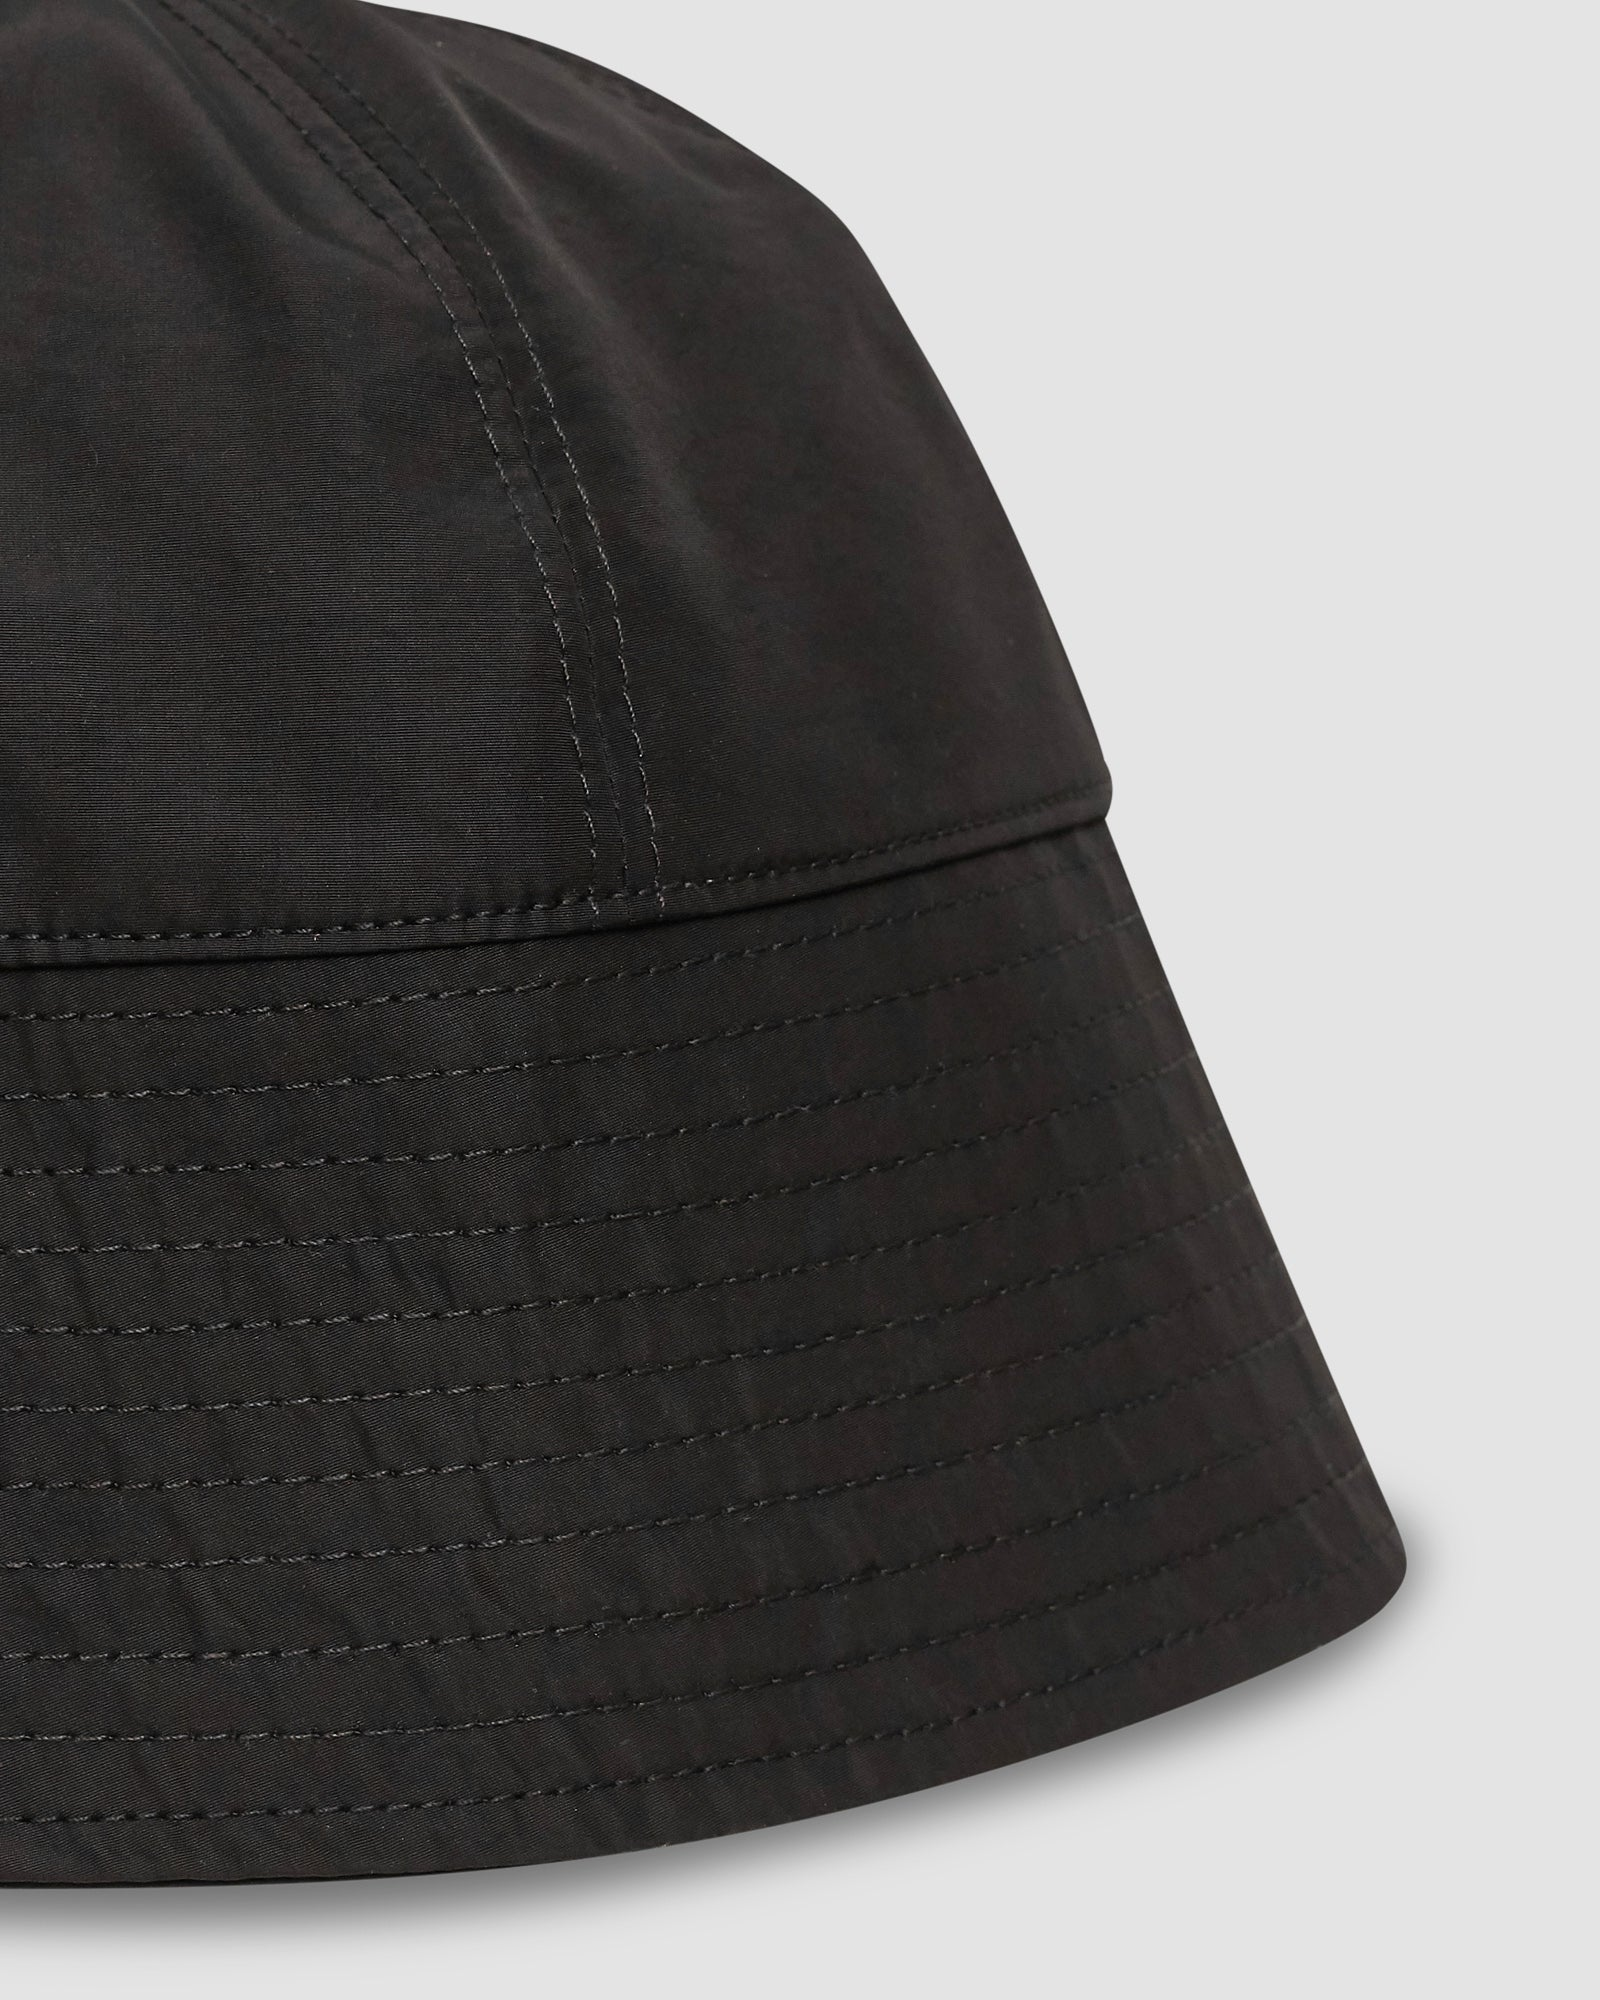 NARROW BUCKET HAT W/ BUCKLE